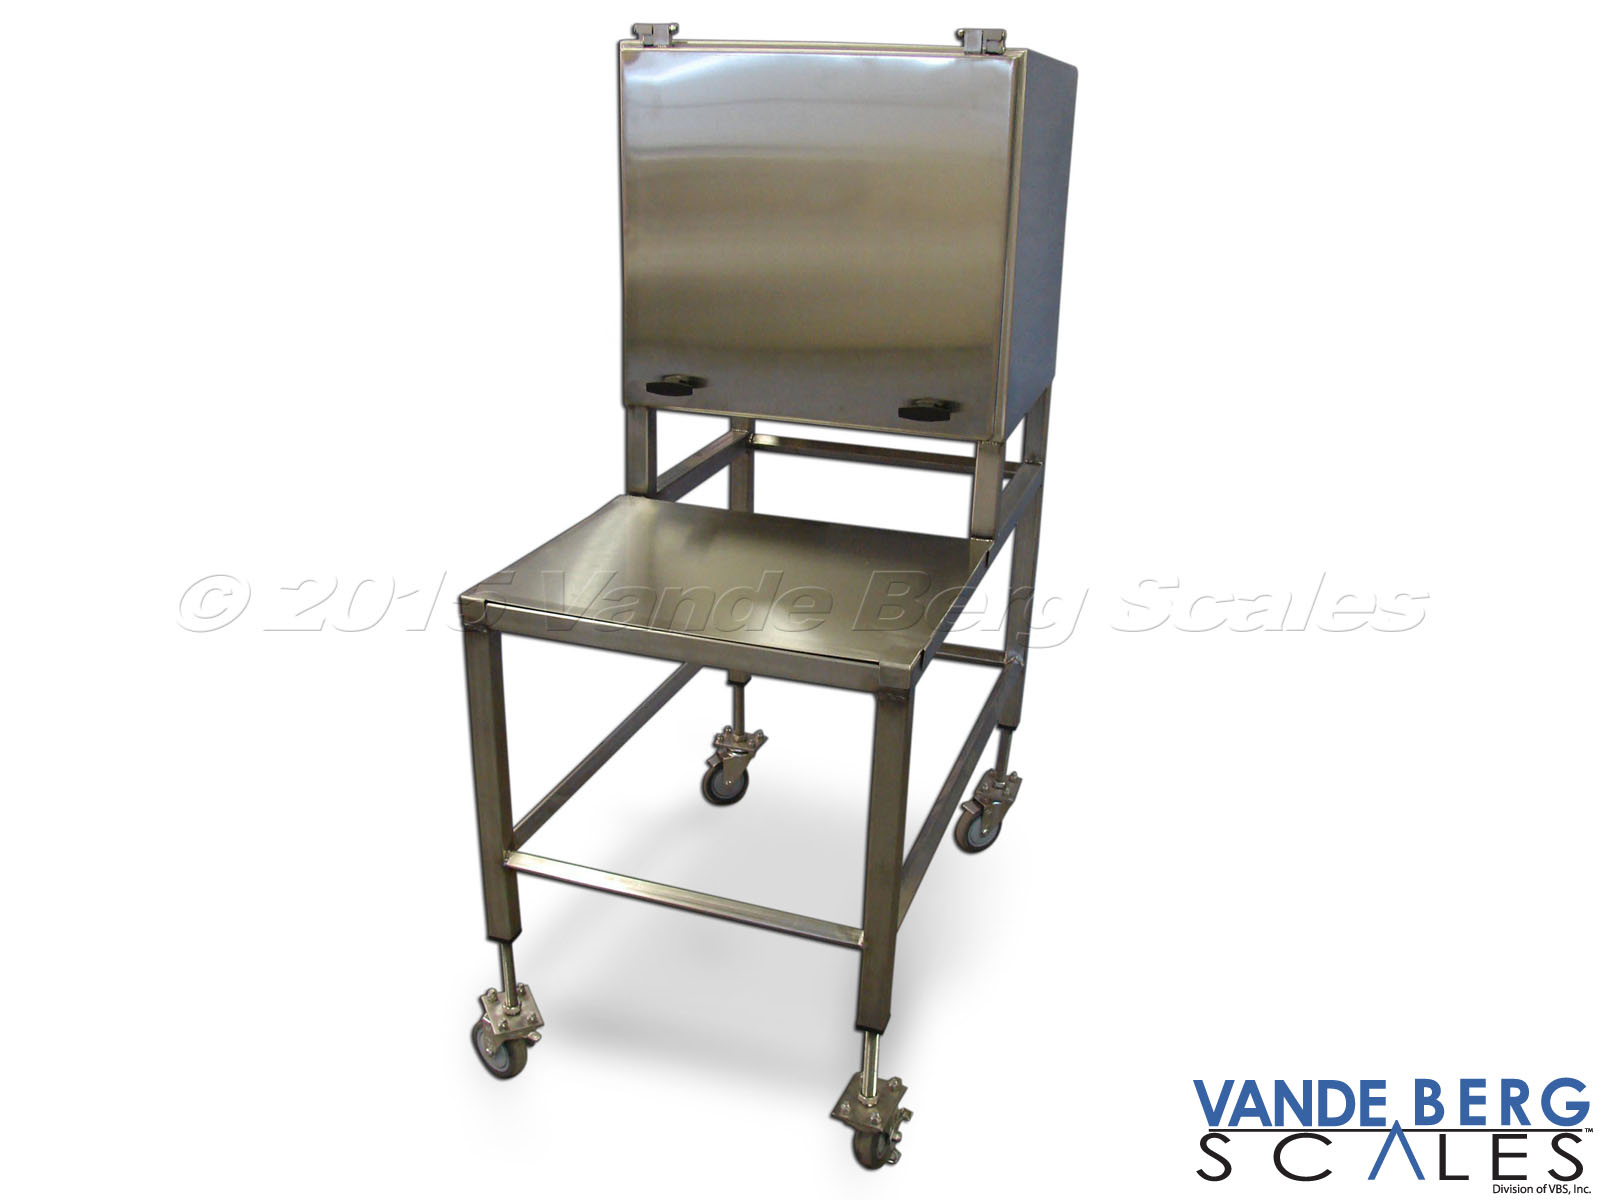 Mobile stainless steel cart with NEMA-4X enclosure and work platform.